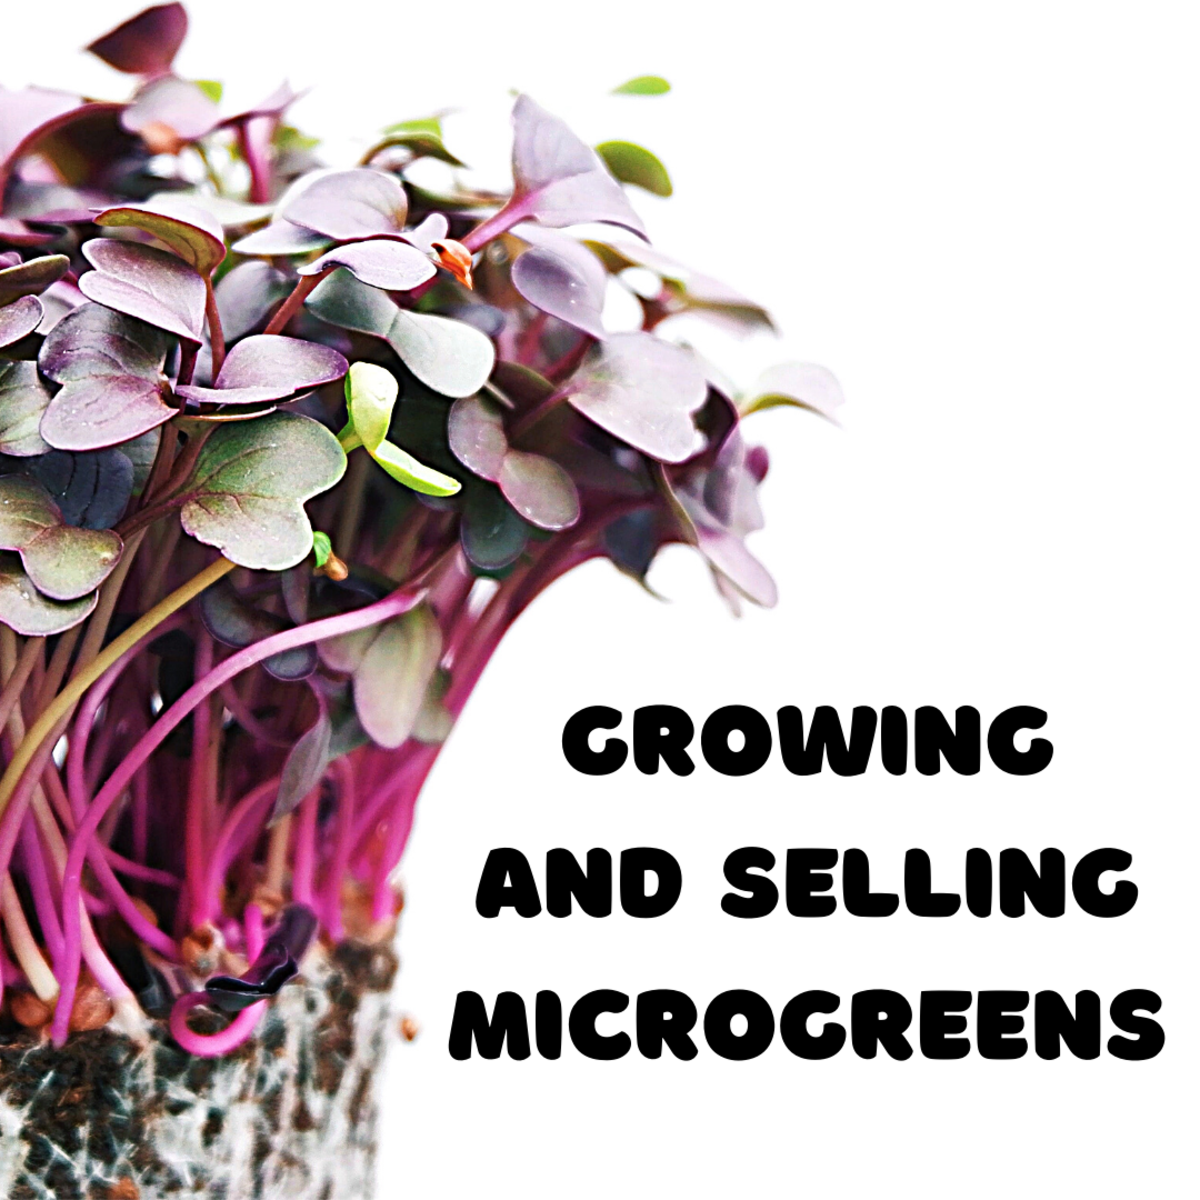 Learn about urban farming and growing microgreens in this article